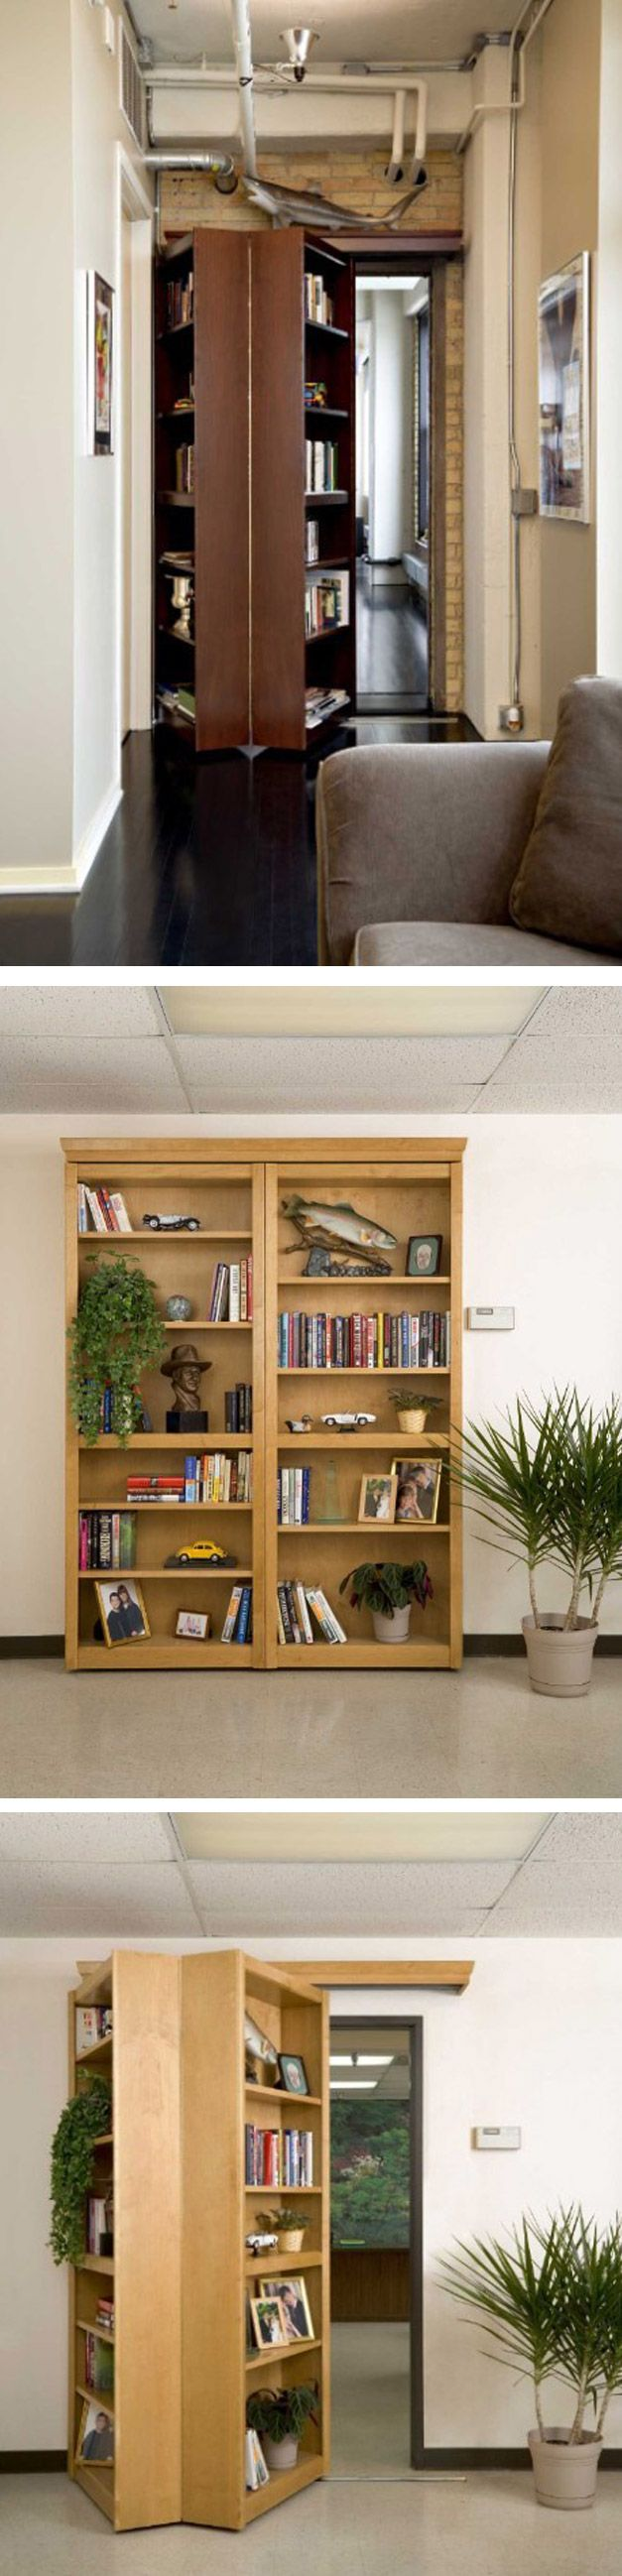 arent doors just a waste of space? This could be really something I could work with in general living spaces.!  Hidden Bookcase/Door